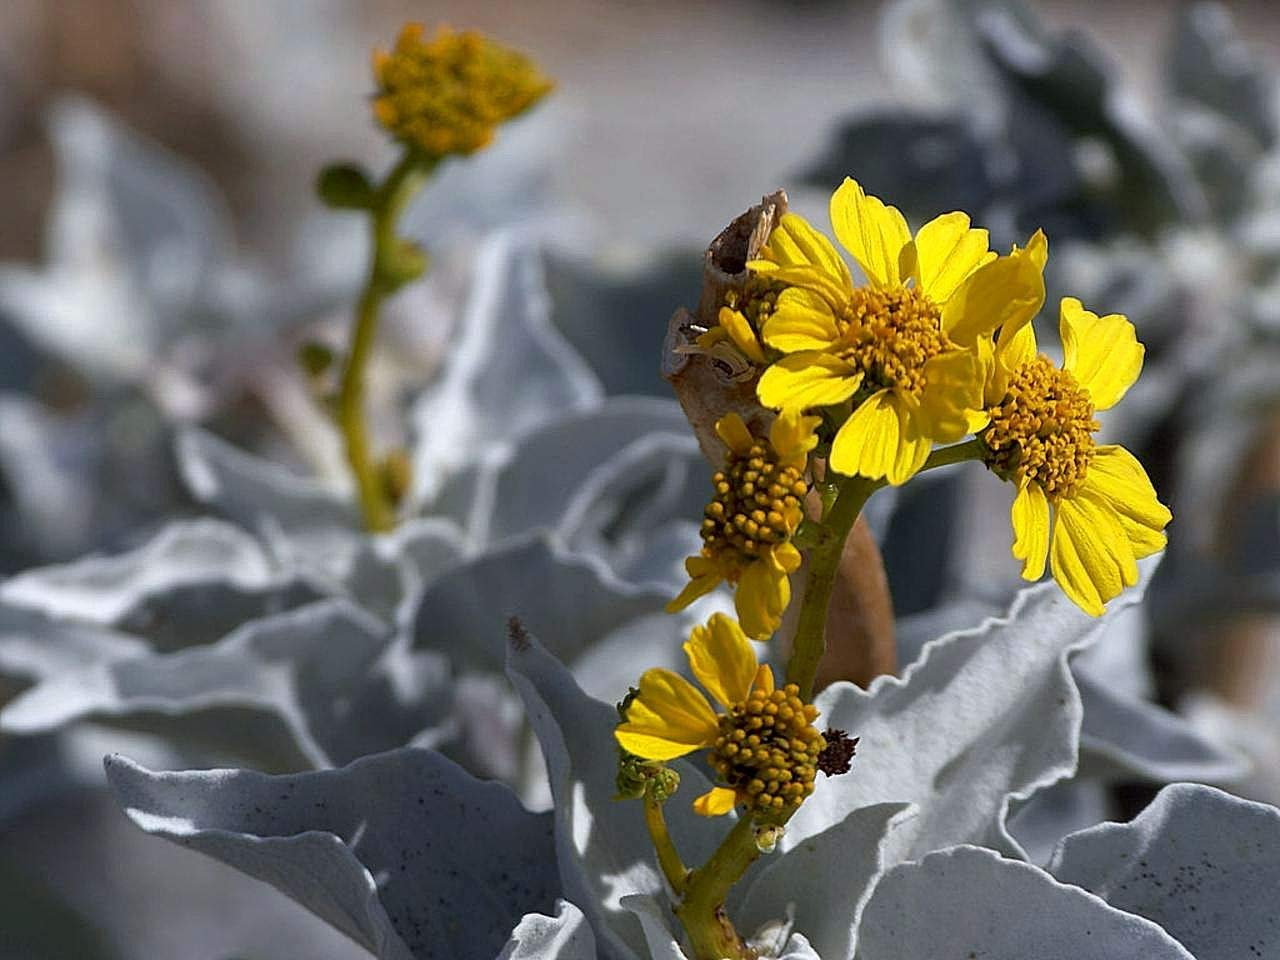 1 Packet - 50 Seeds of Brittlebush Encelia farinosa/Asteracea